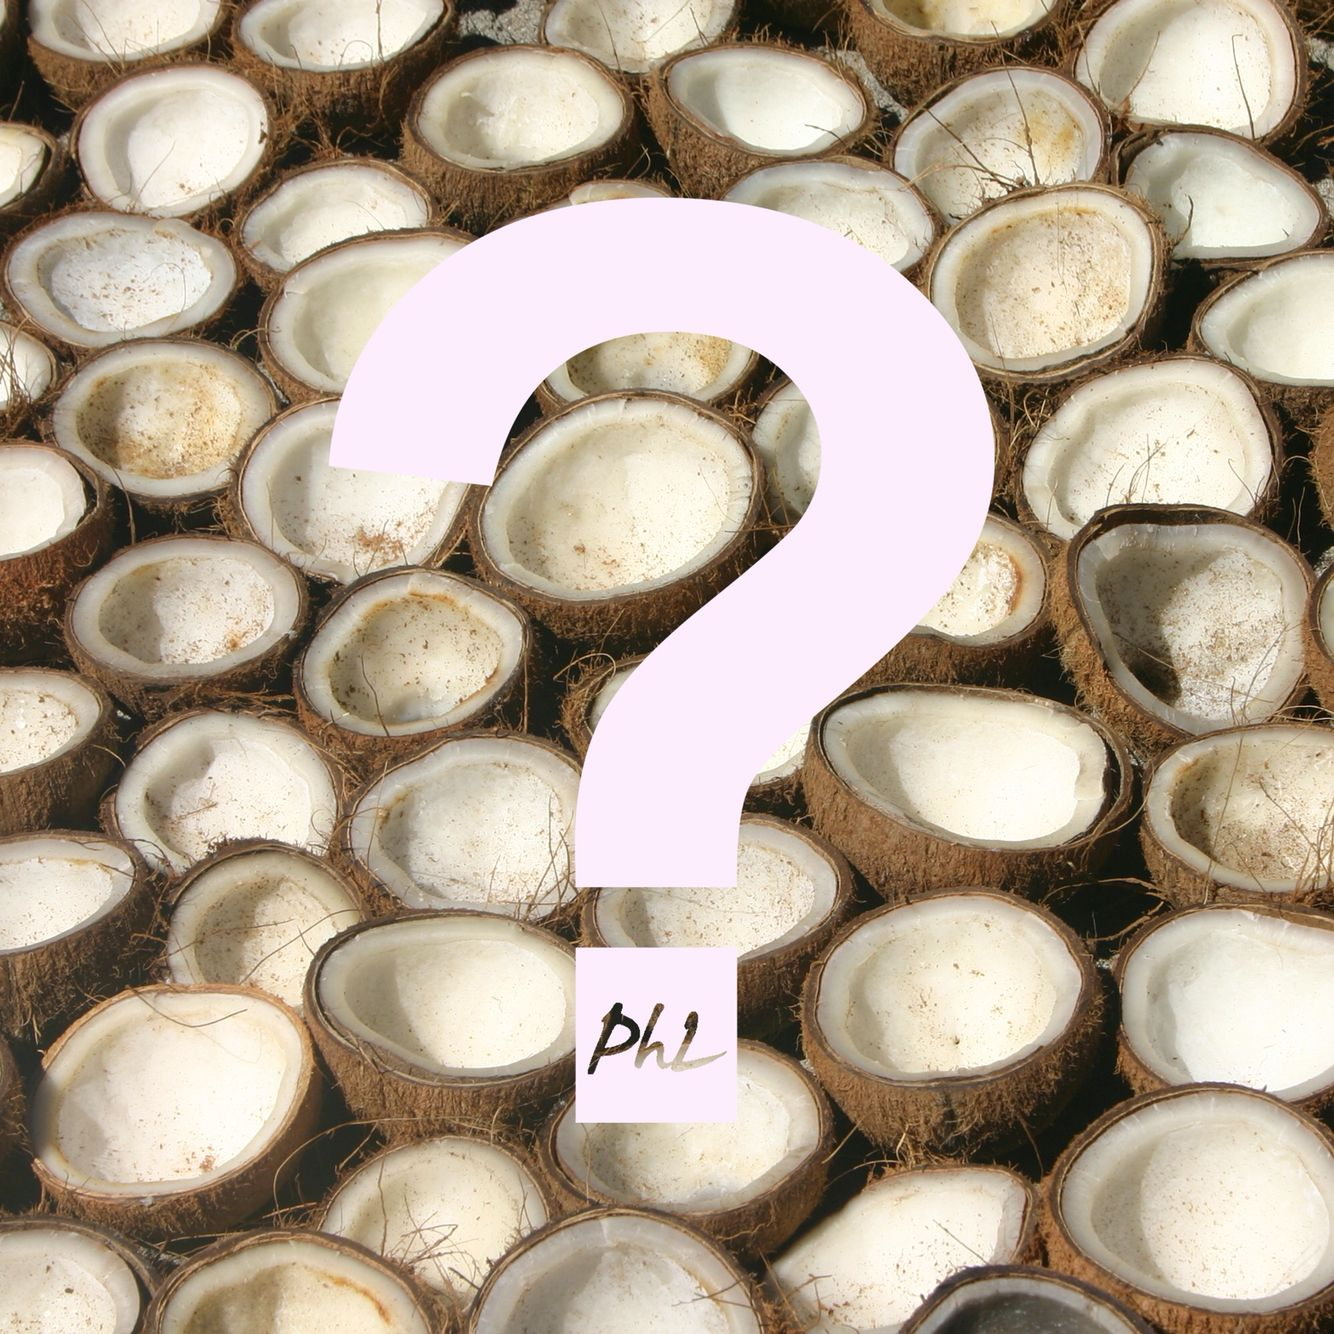 Did you know Coconut Oil is a great natural ingredient to